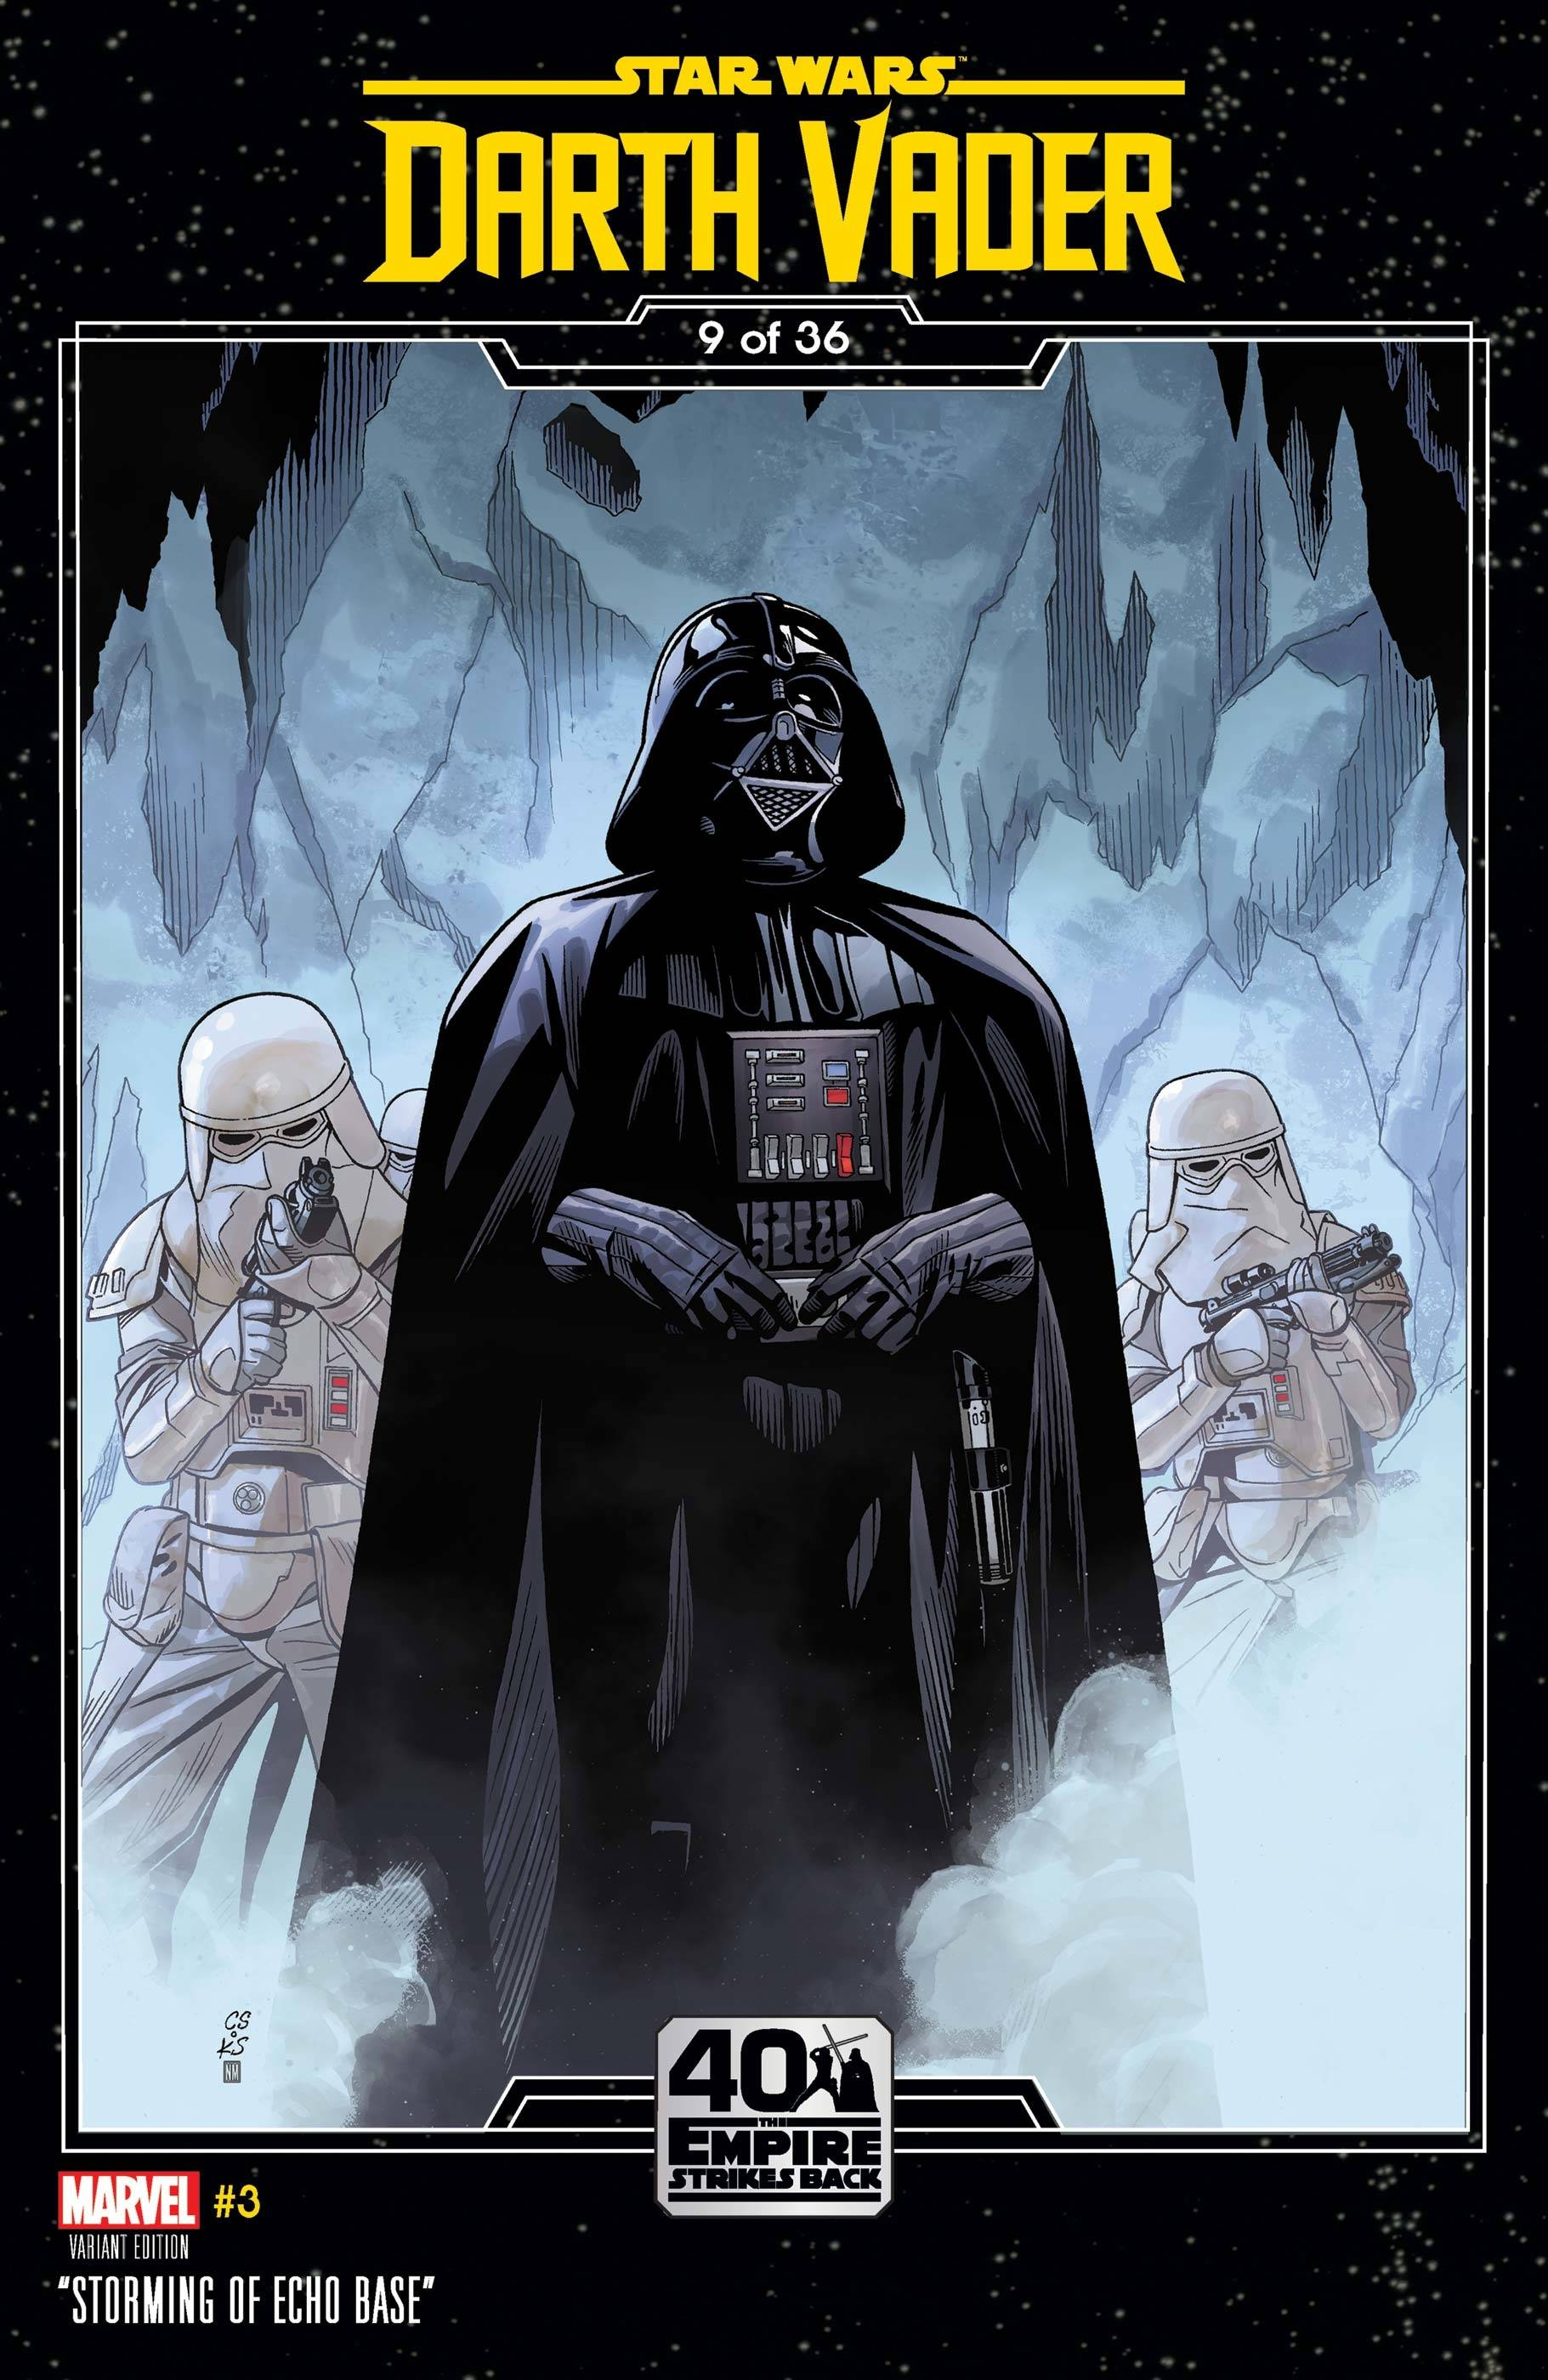 Darth Vader #3 (Chris Sprouse The Empire Strikes Back Variant Cover) (15.04.2020)